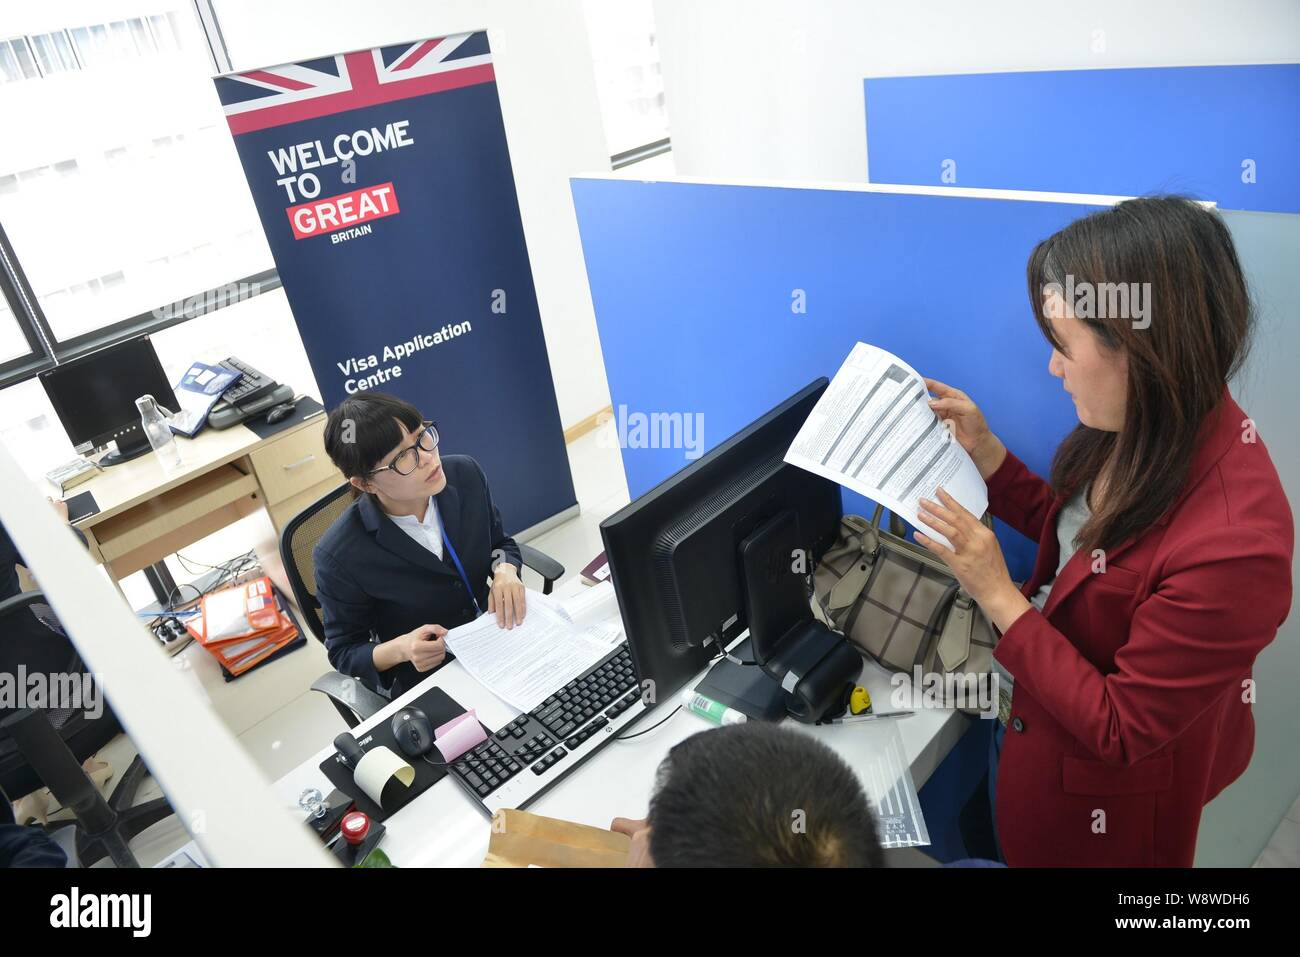 FILE--A Chinese employee serves applicants at the UK Visa